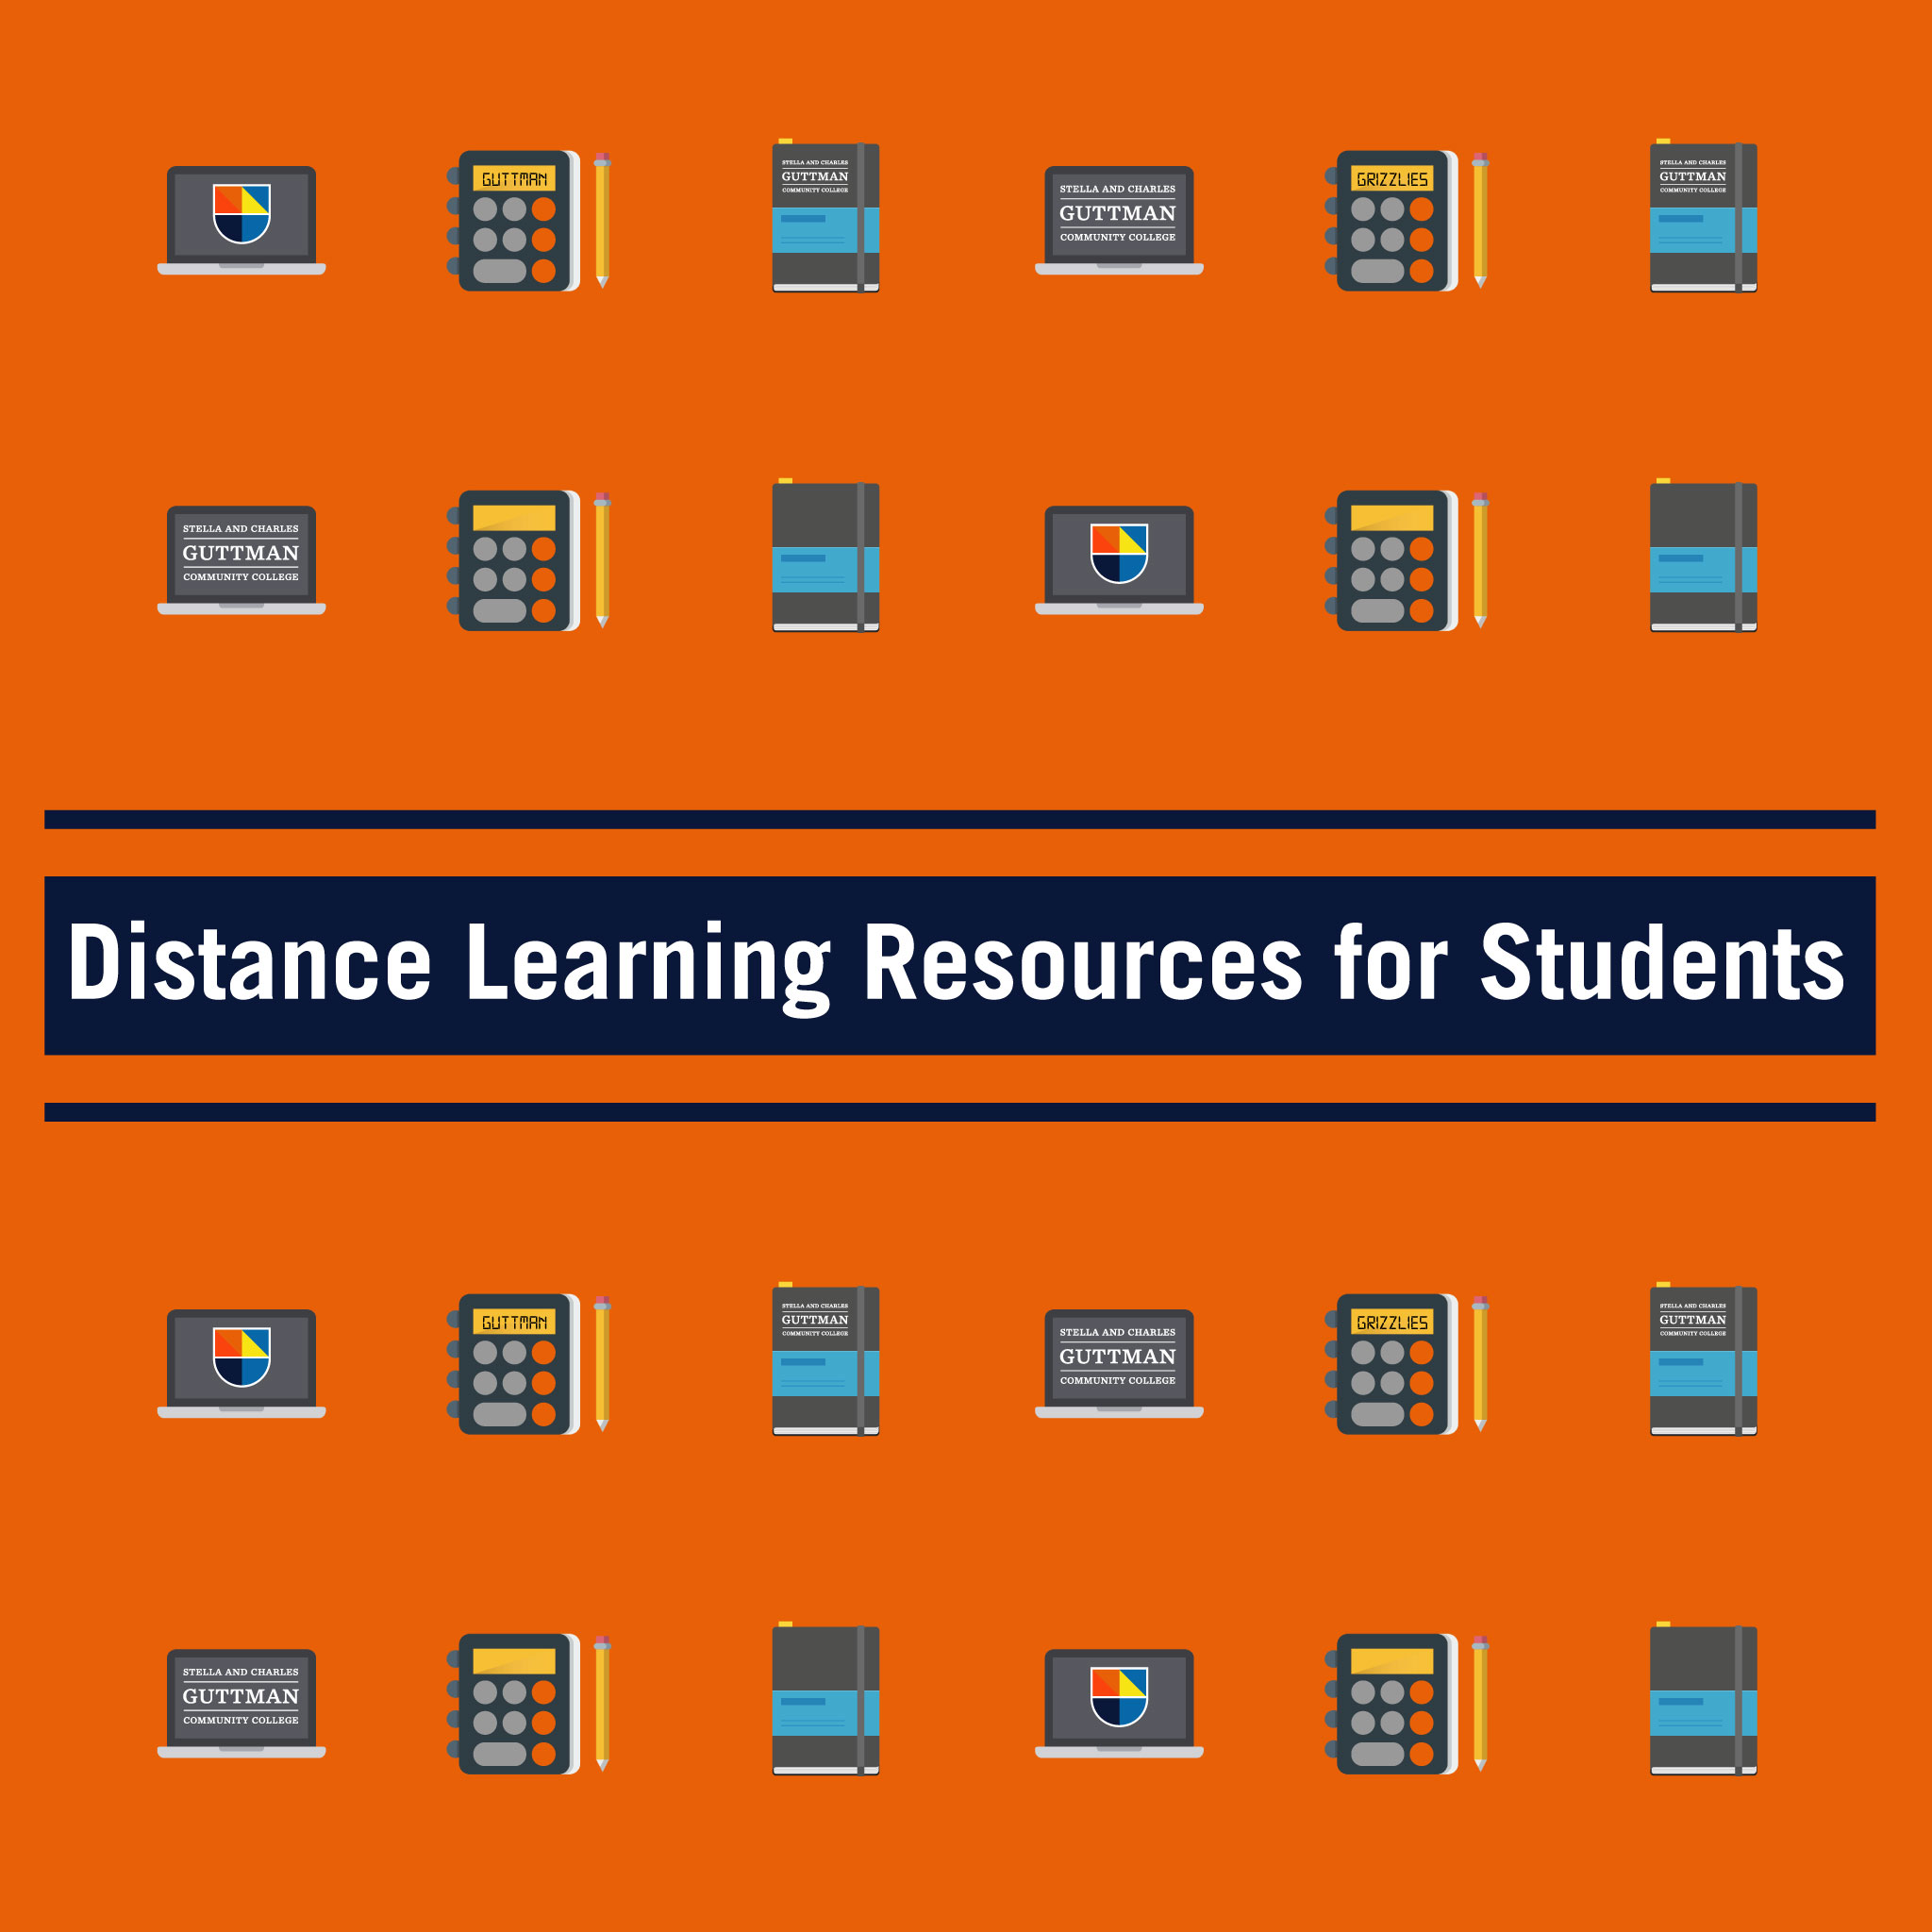 Distance Learning Resources for Students icon